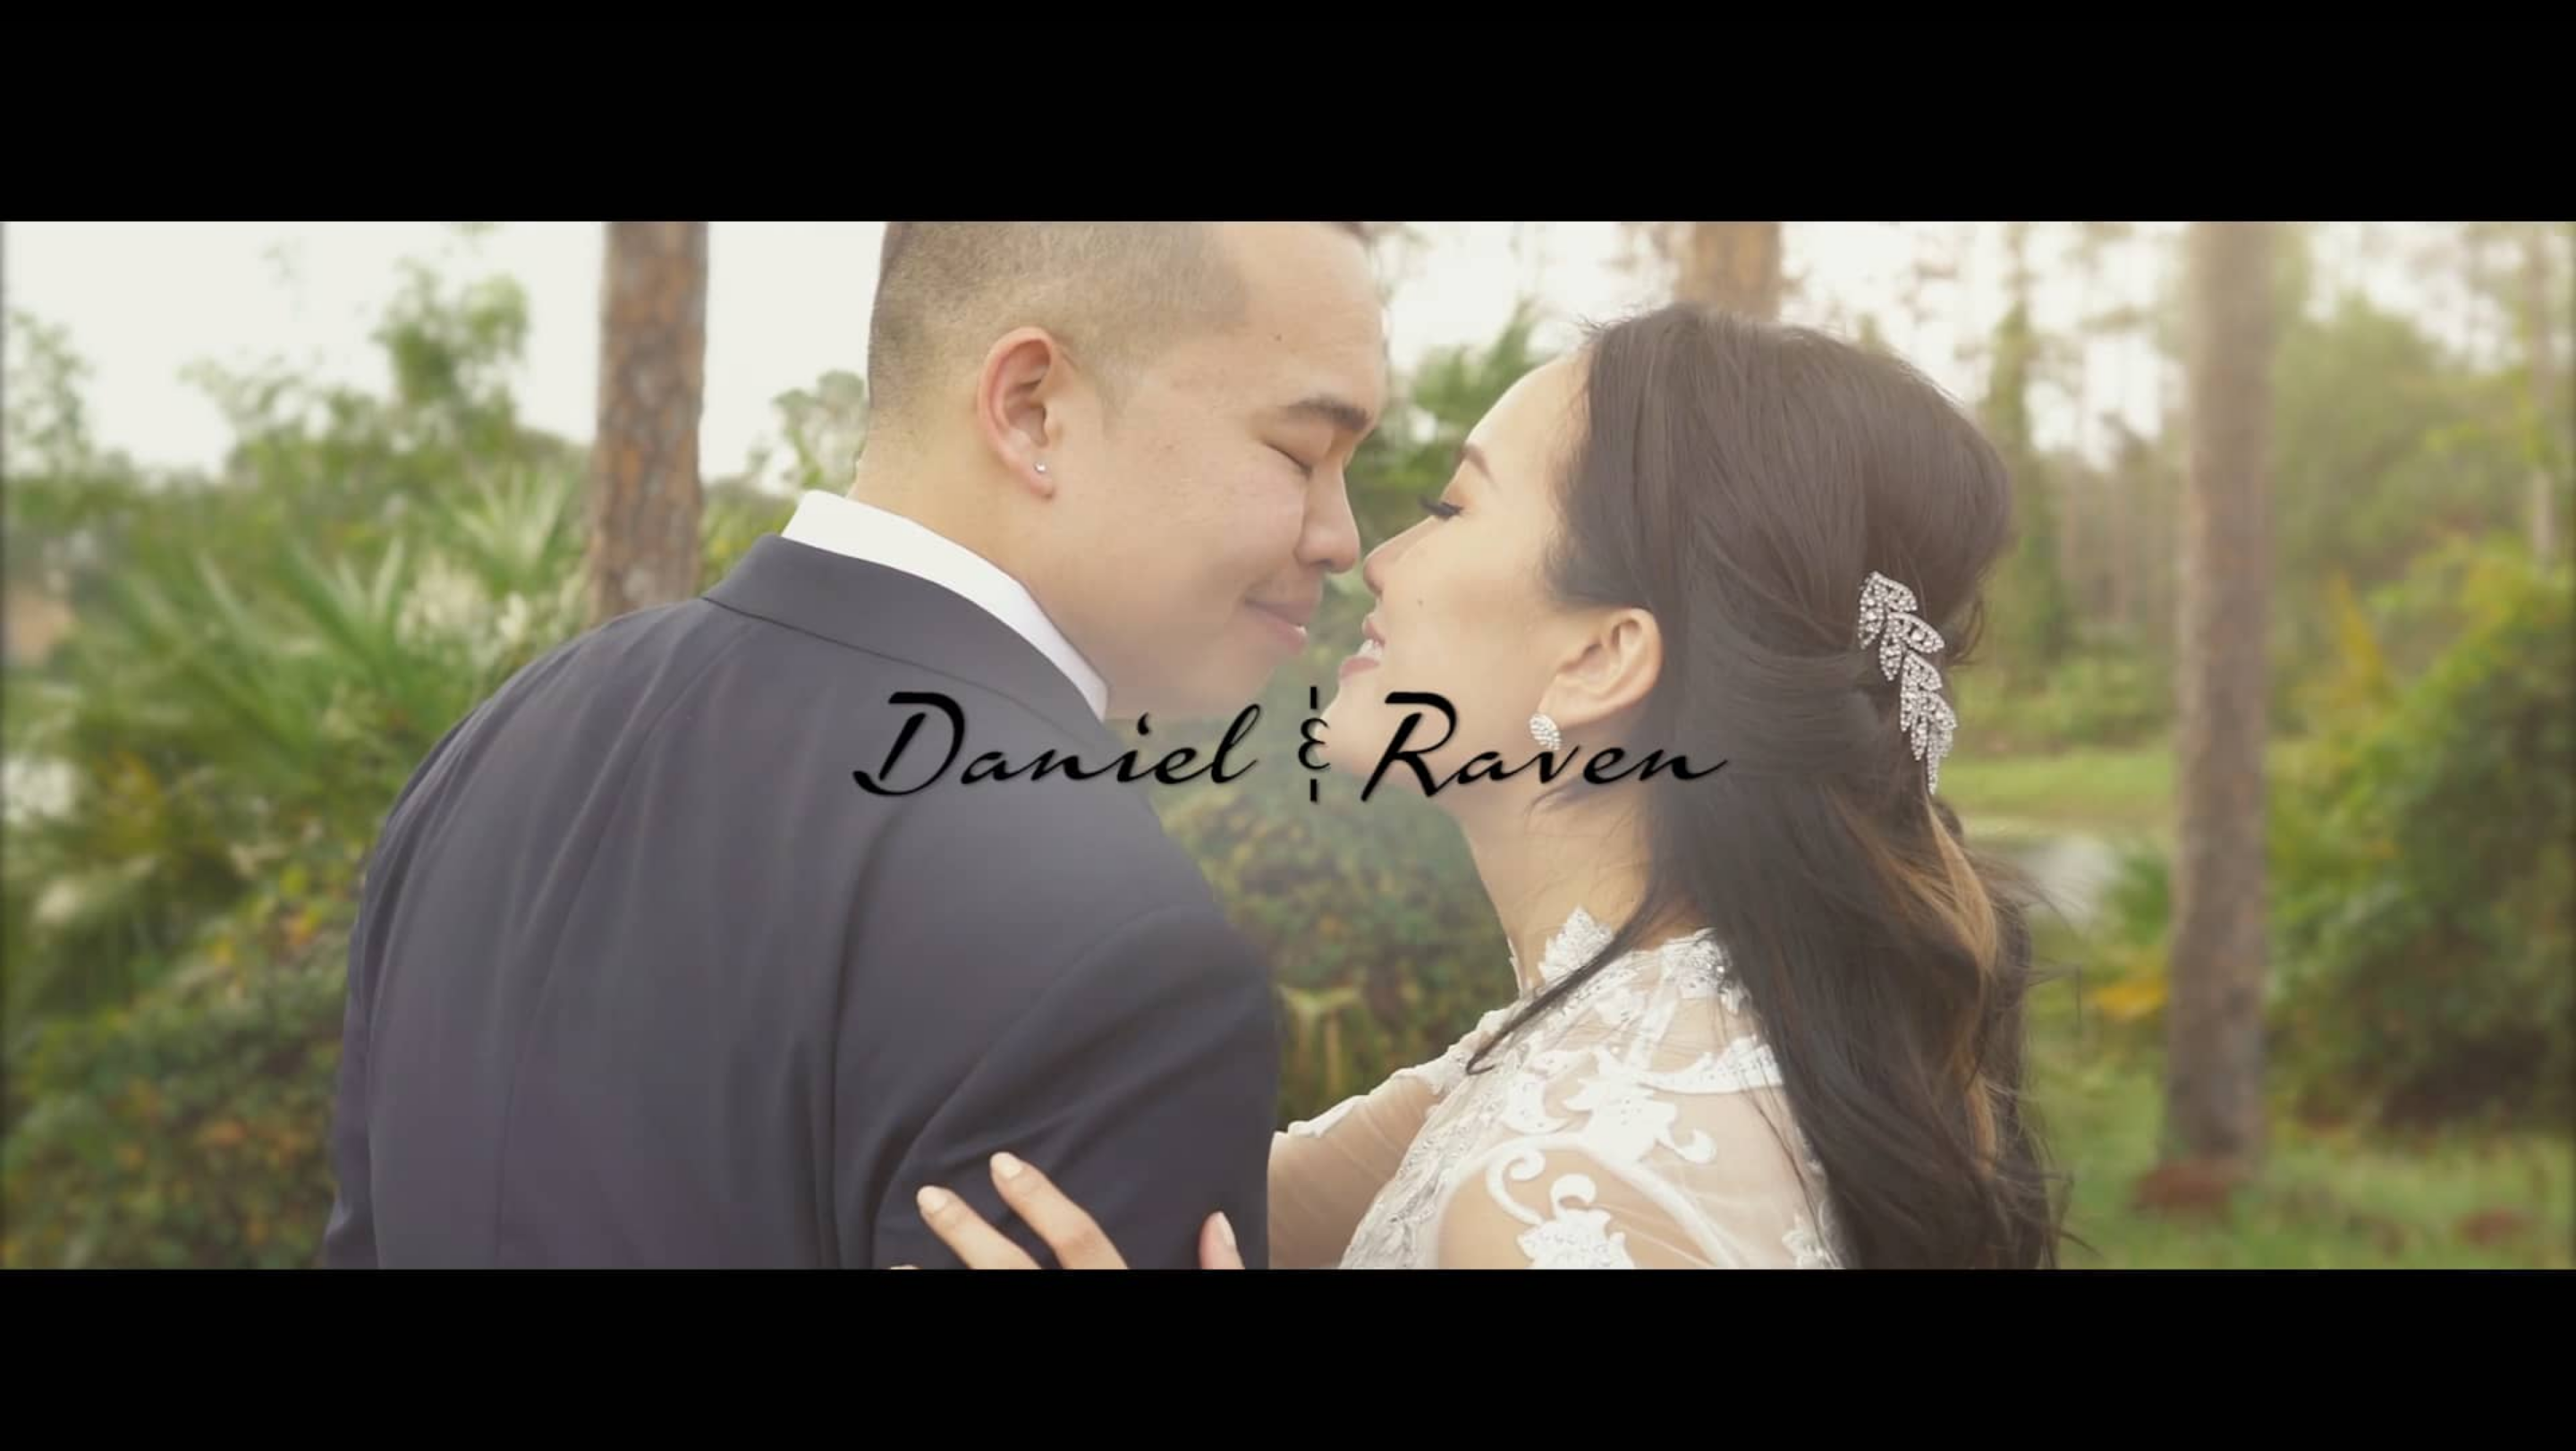 Daniel + Raven | Orlando, Florida | heaven event center